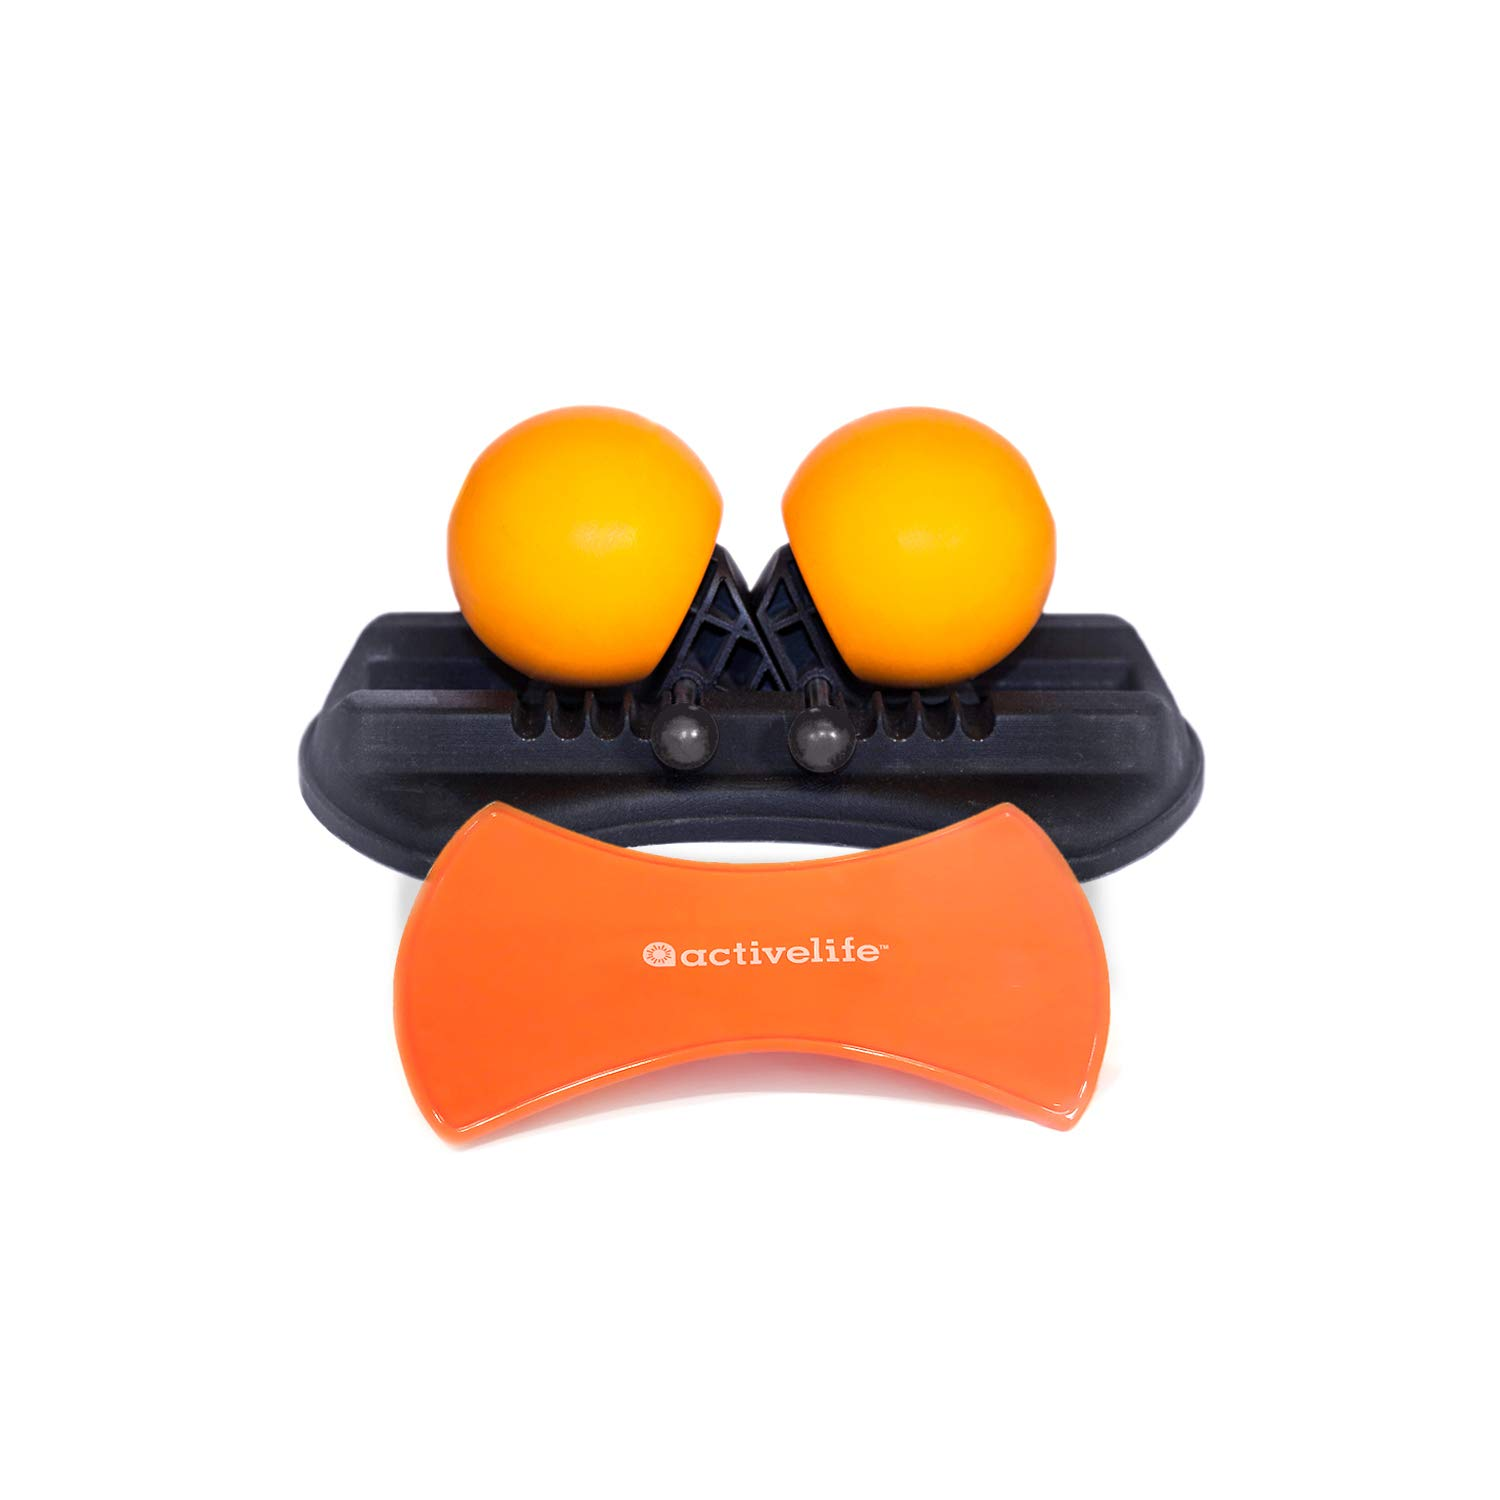 Highballer Twin Massage Balls with Mounting Pad - Adjustable Massage Balls Targets Trigger Points and Self-Myofascial Release (SMR) on Head Neck Shoulders Arms Back Hip Thighs & Legs by HighRoller